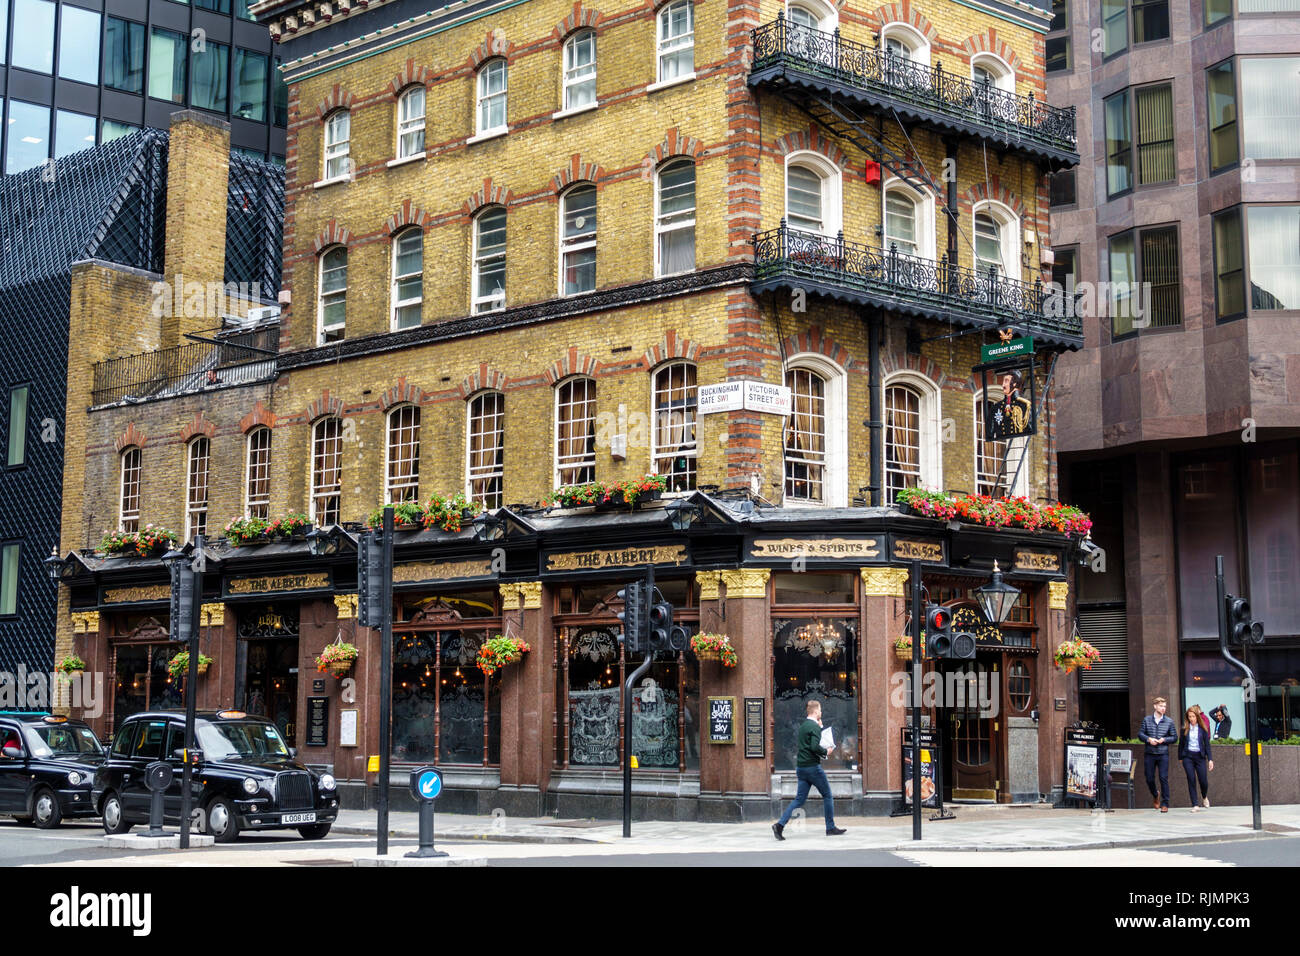 United Kingdom Great Britain England London Westminster The Albert Pub Victorian public house building exterior brick building black taxicab taxi hack - Stock Image